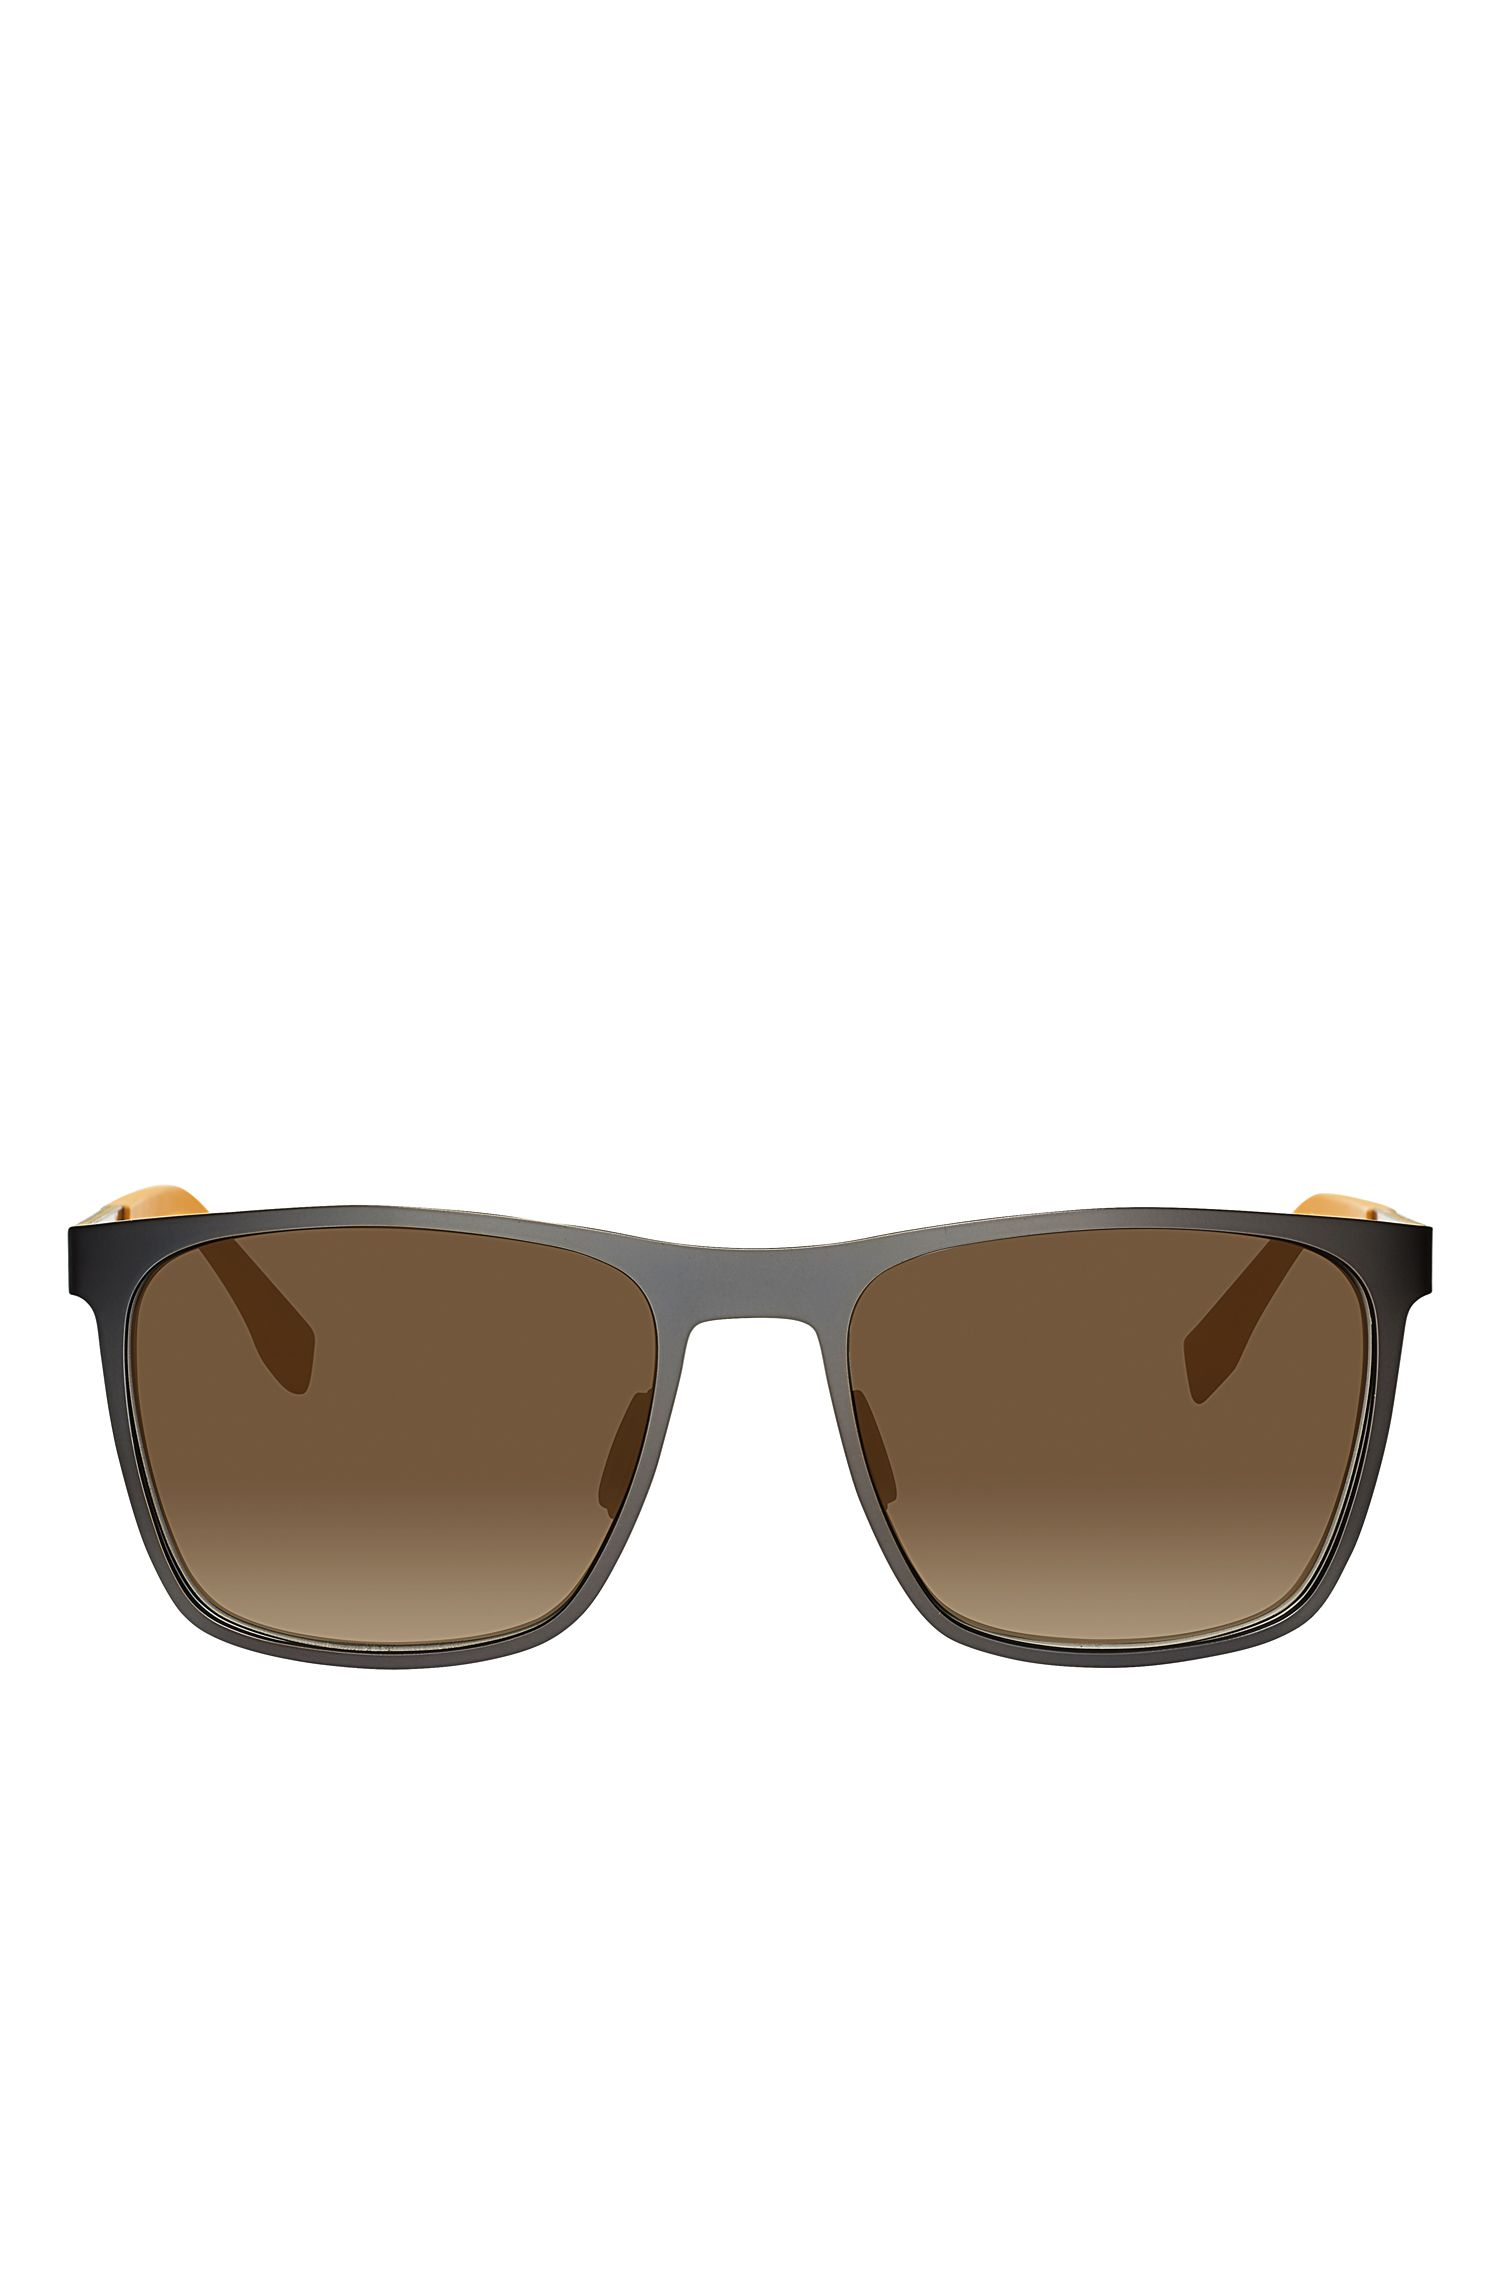 Gunmetal Flash Lens Rectangular Sunglasses | BOSS 0732S